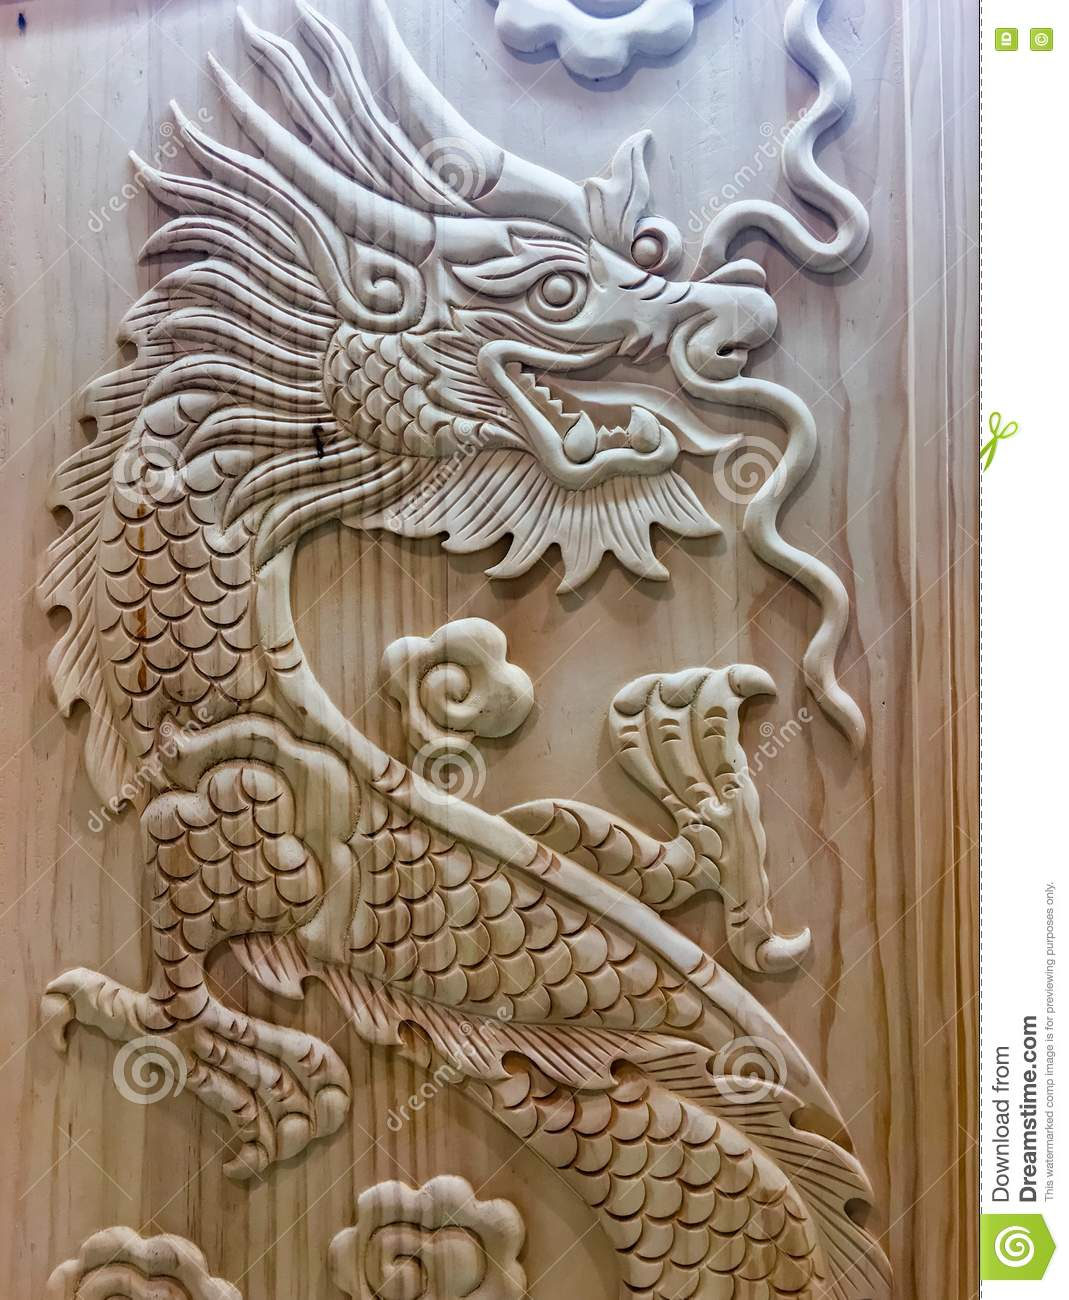 Dragon wooden carving wood Chinese year new sign symbols religion powers leader